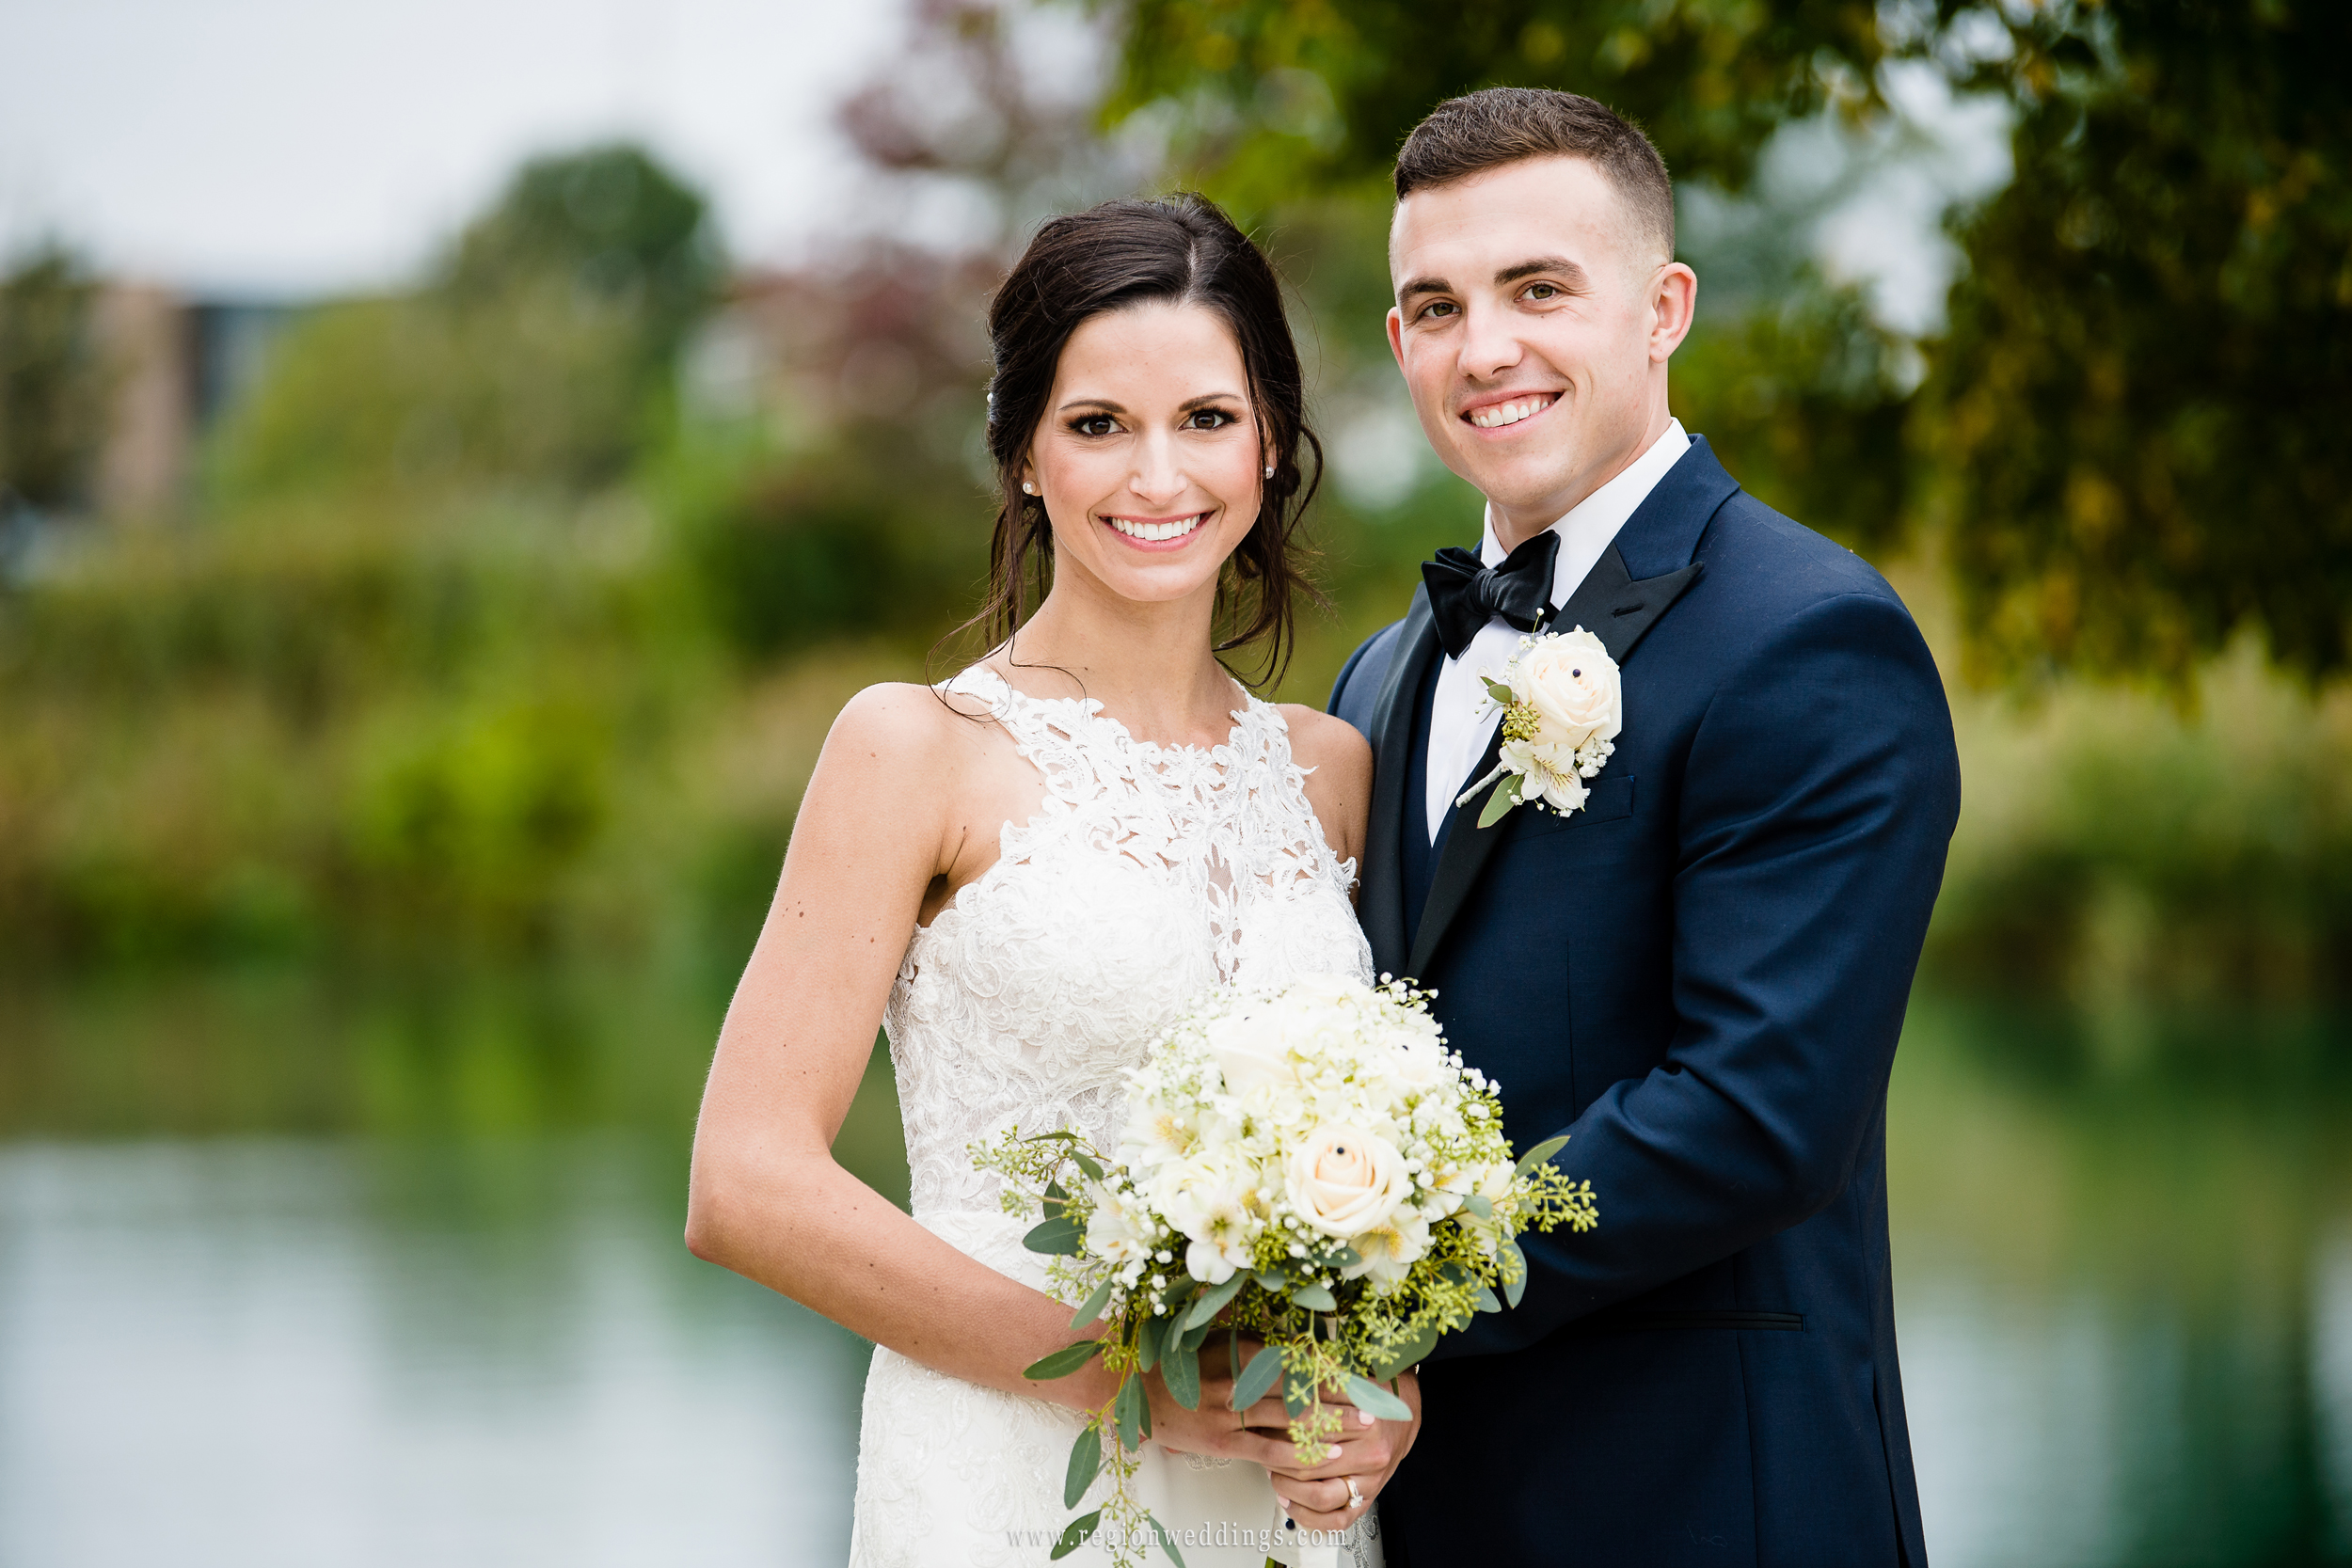 A lakeside portrait of the bride and groom.